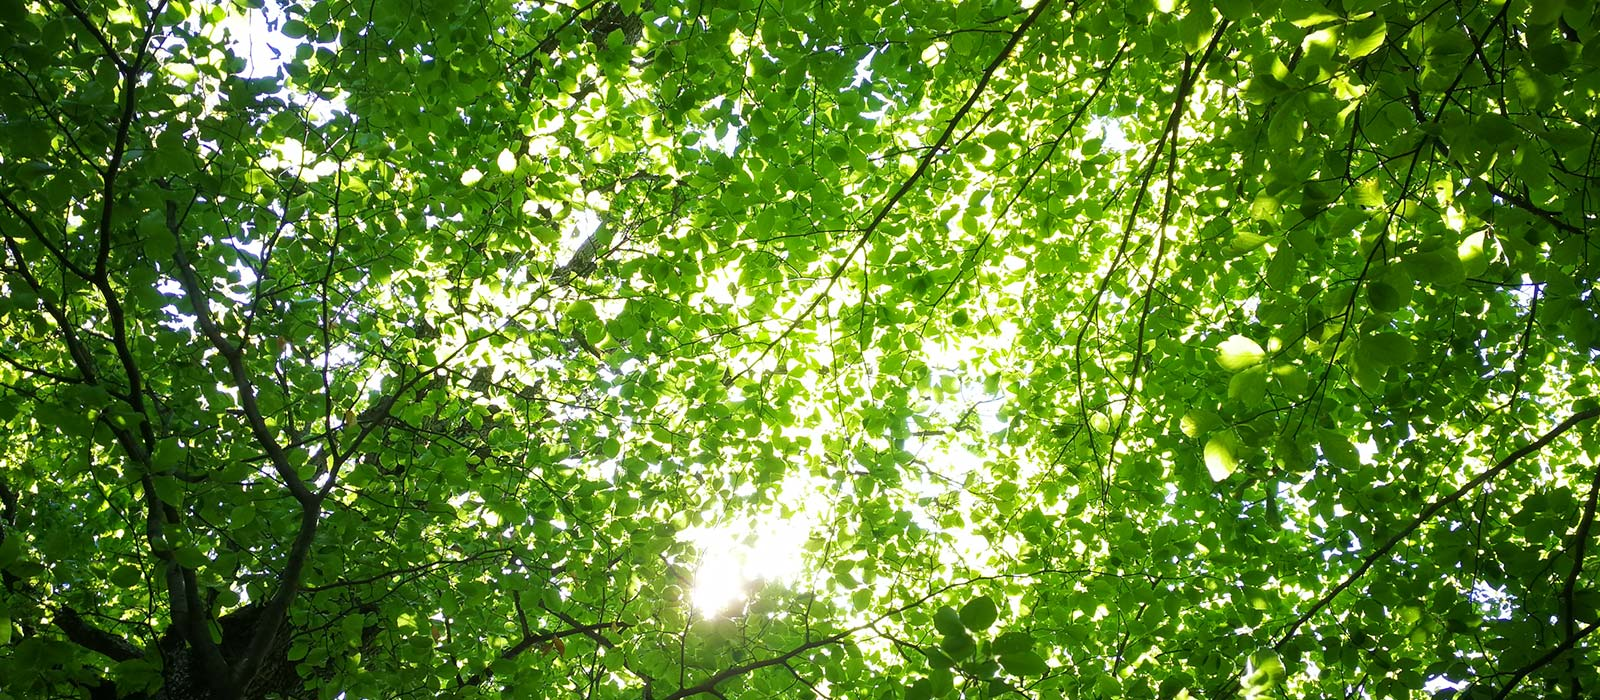 A photo taken under trees pointed up towards the sky, with sunlight shining through